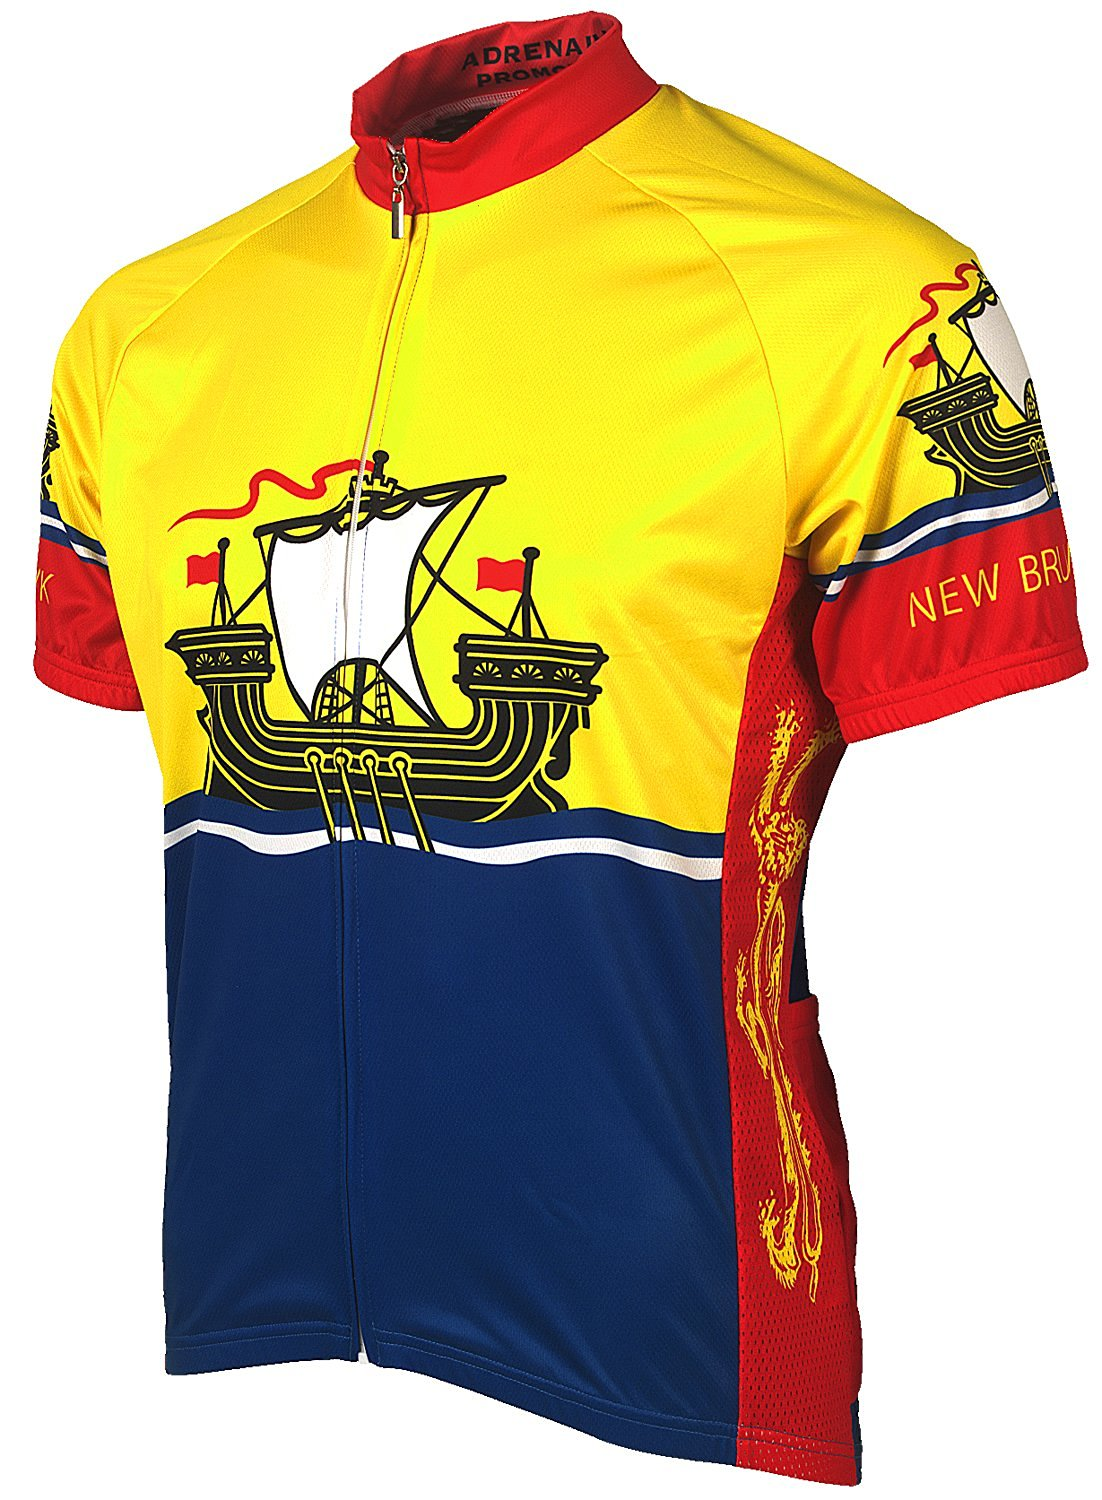 Adrenaline Promotions Canadian Provinces Quebec Cycling Jersey